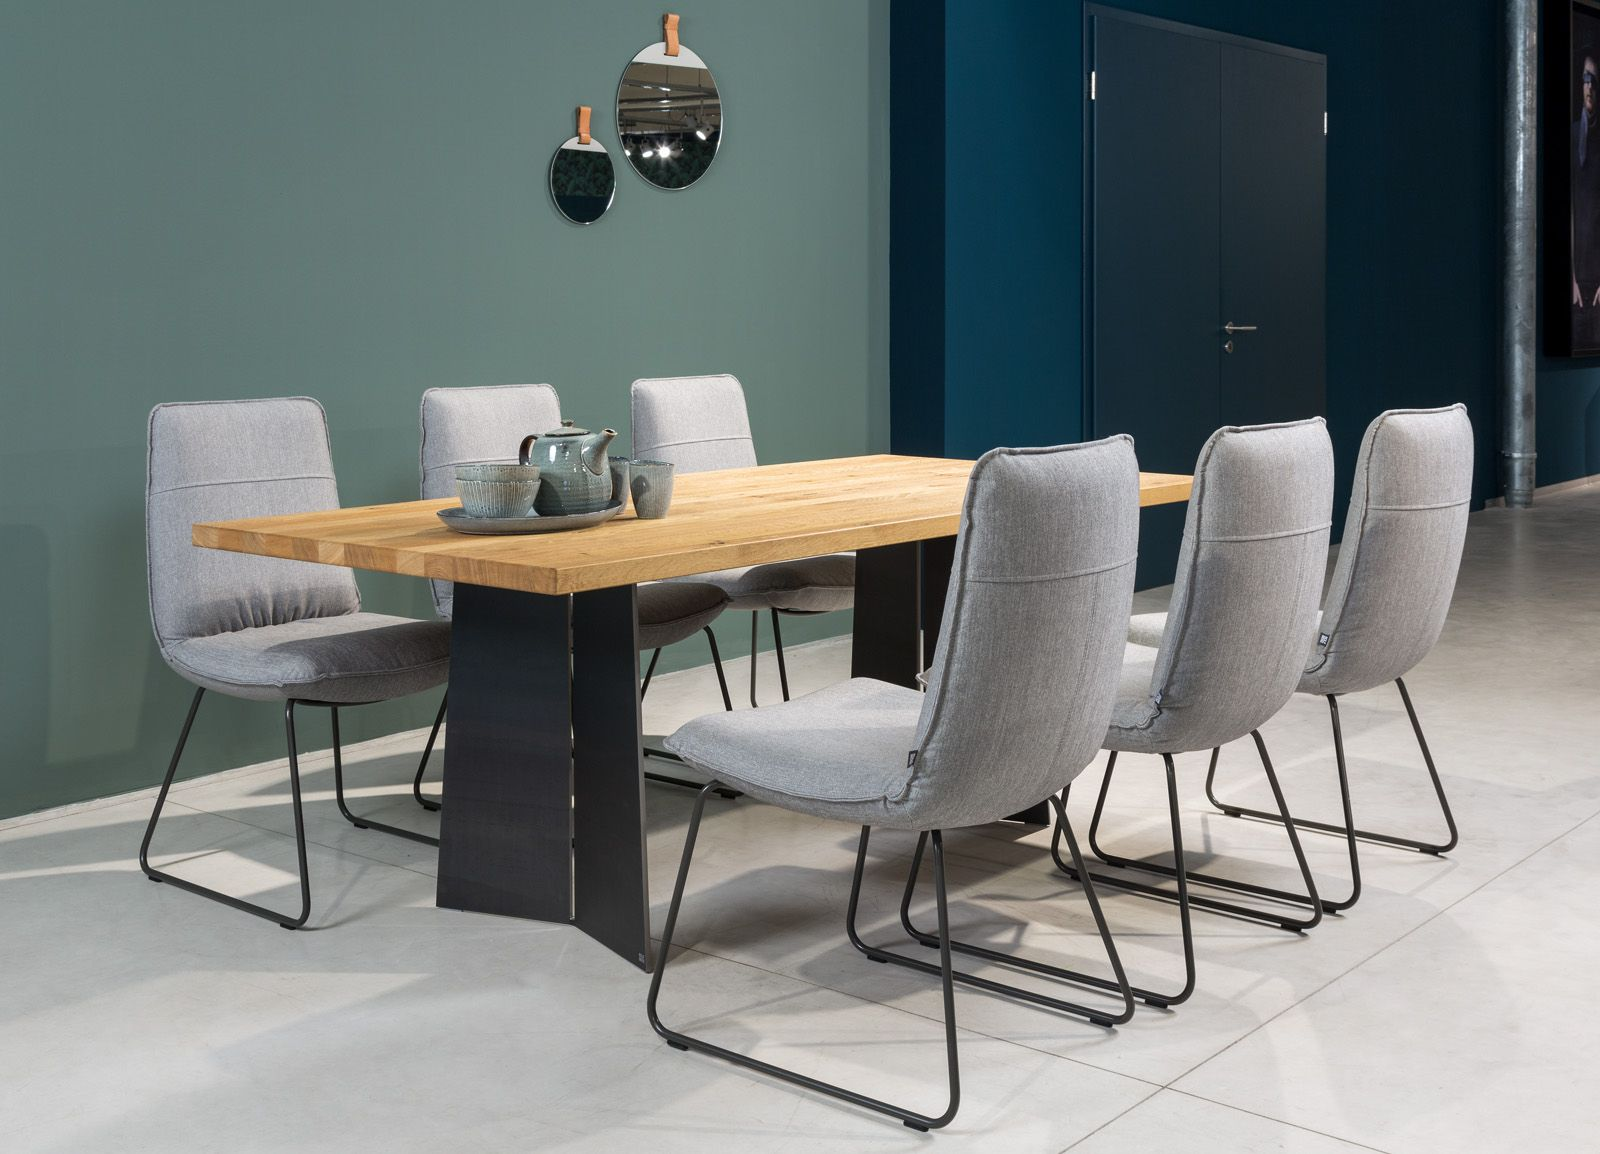 The Rolf Benz 969 Table Focus On Nature In Your Dining Room Rolfbenz Table Diningroom Modern Dining Room Dining Room Inspiration Luxury Dining Room